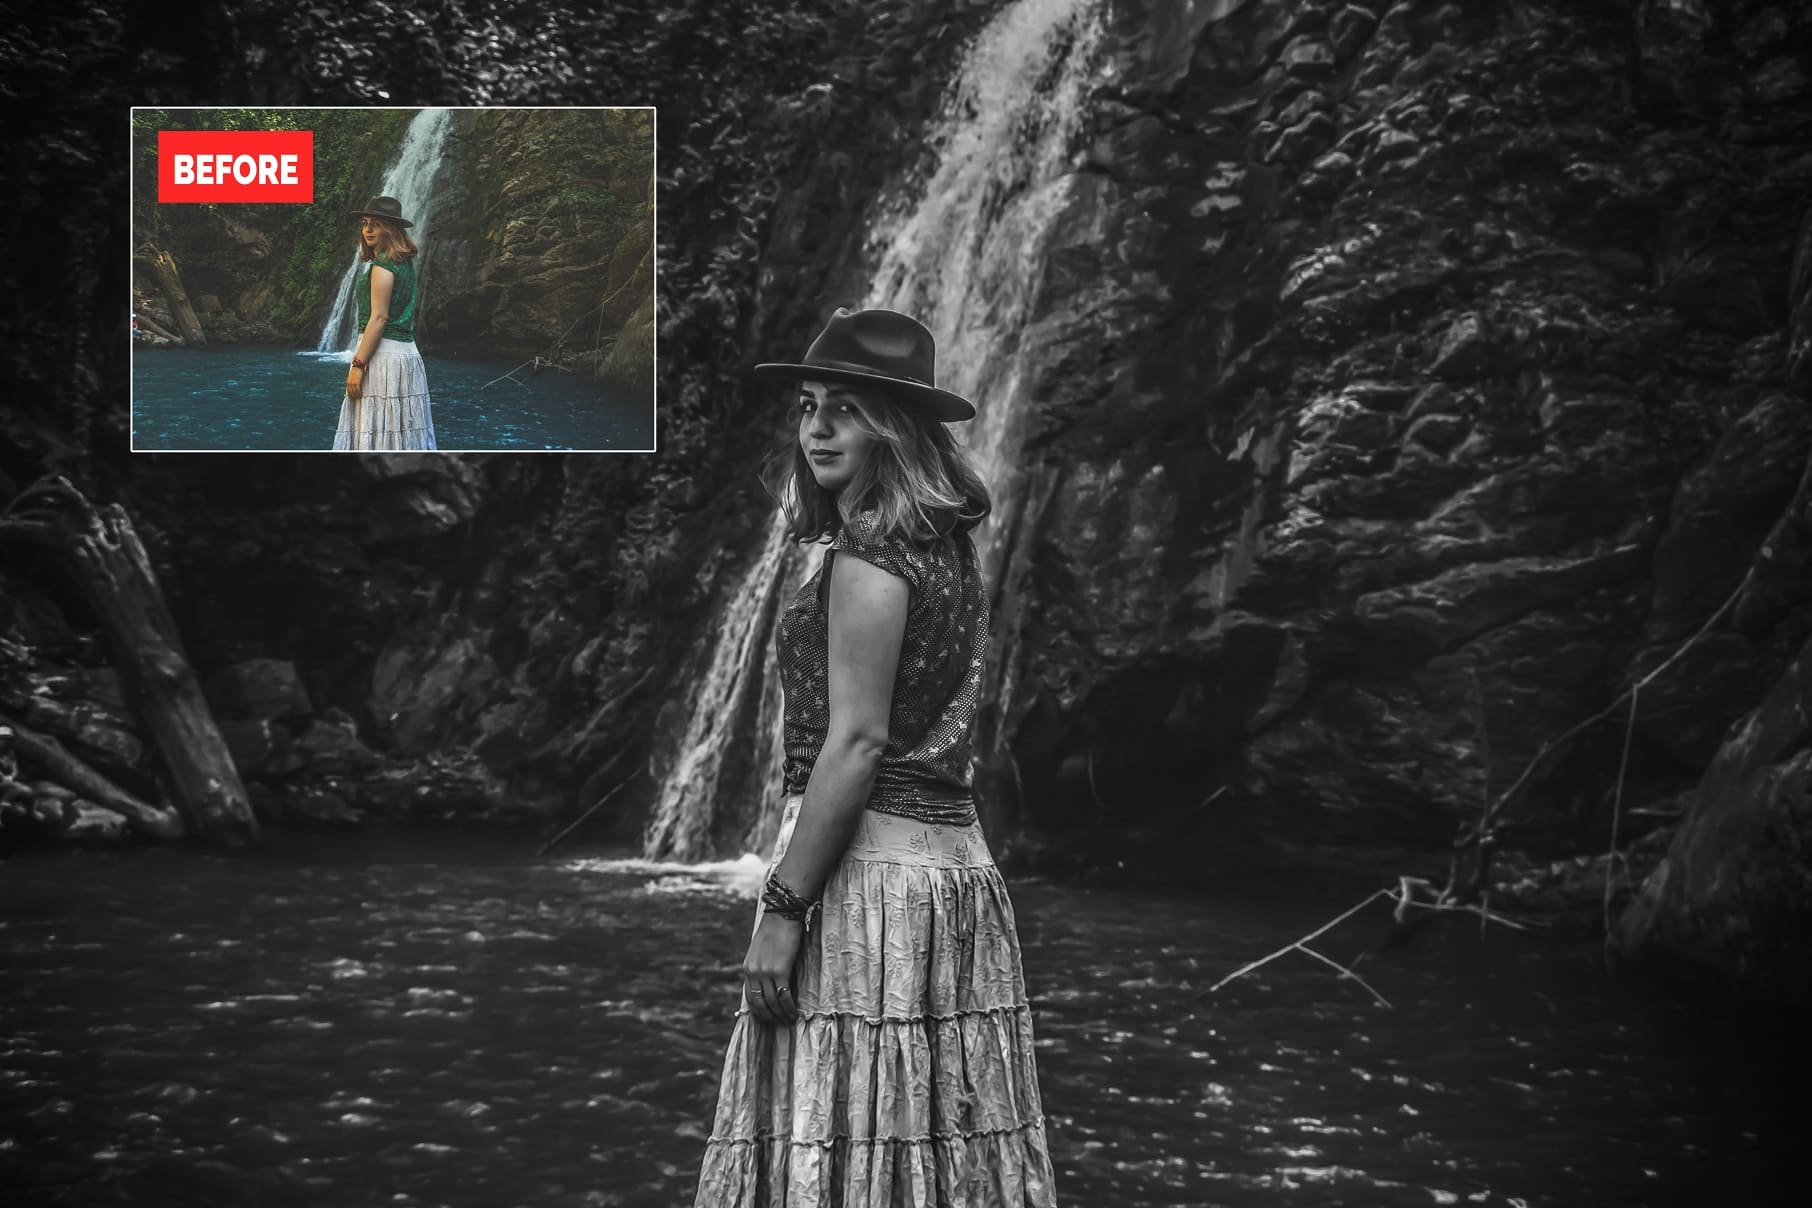 Girl near the waterfall. Black and white photography. 120+ Professional HDR Photoshop Actions Collection.